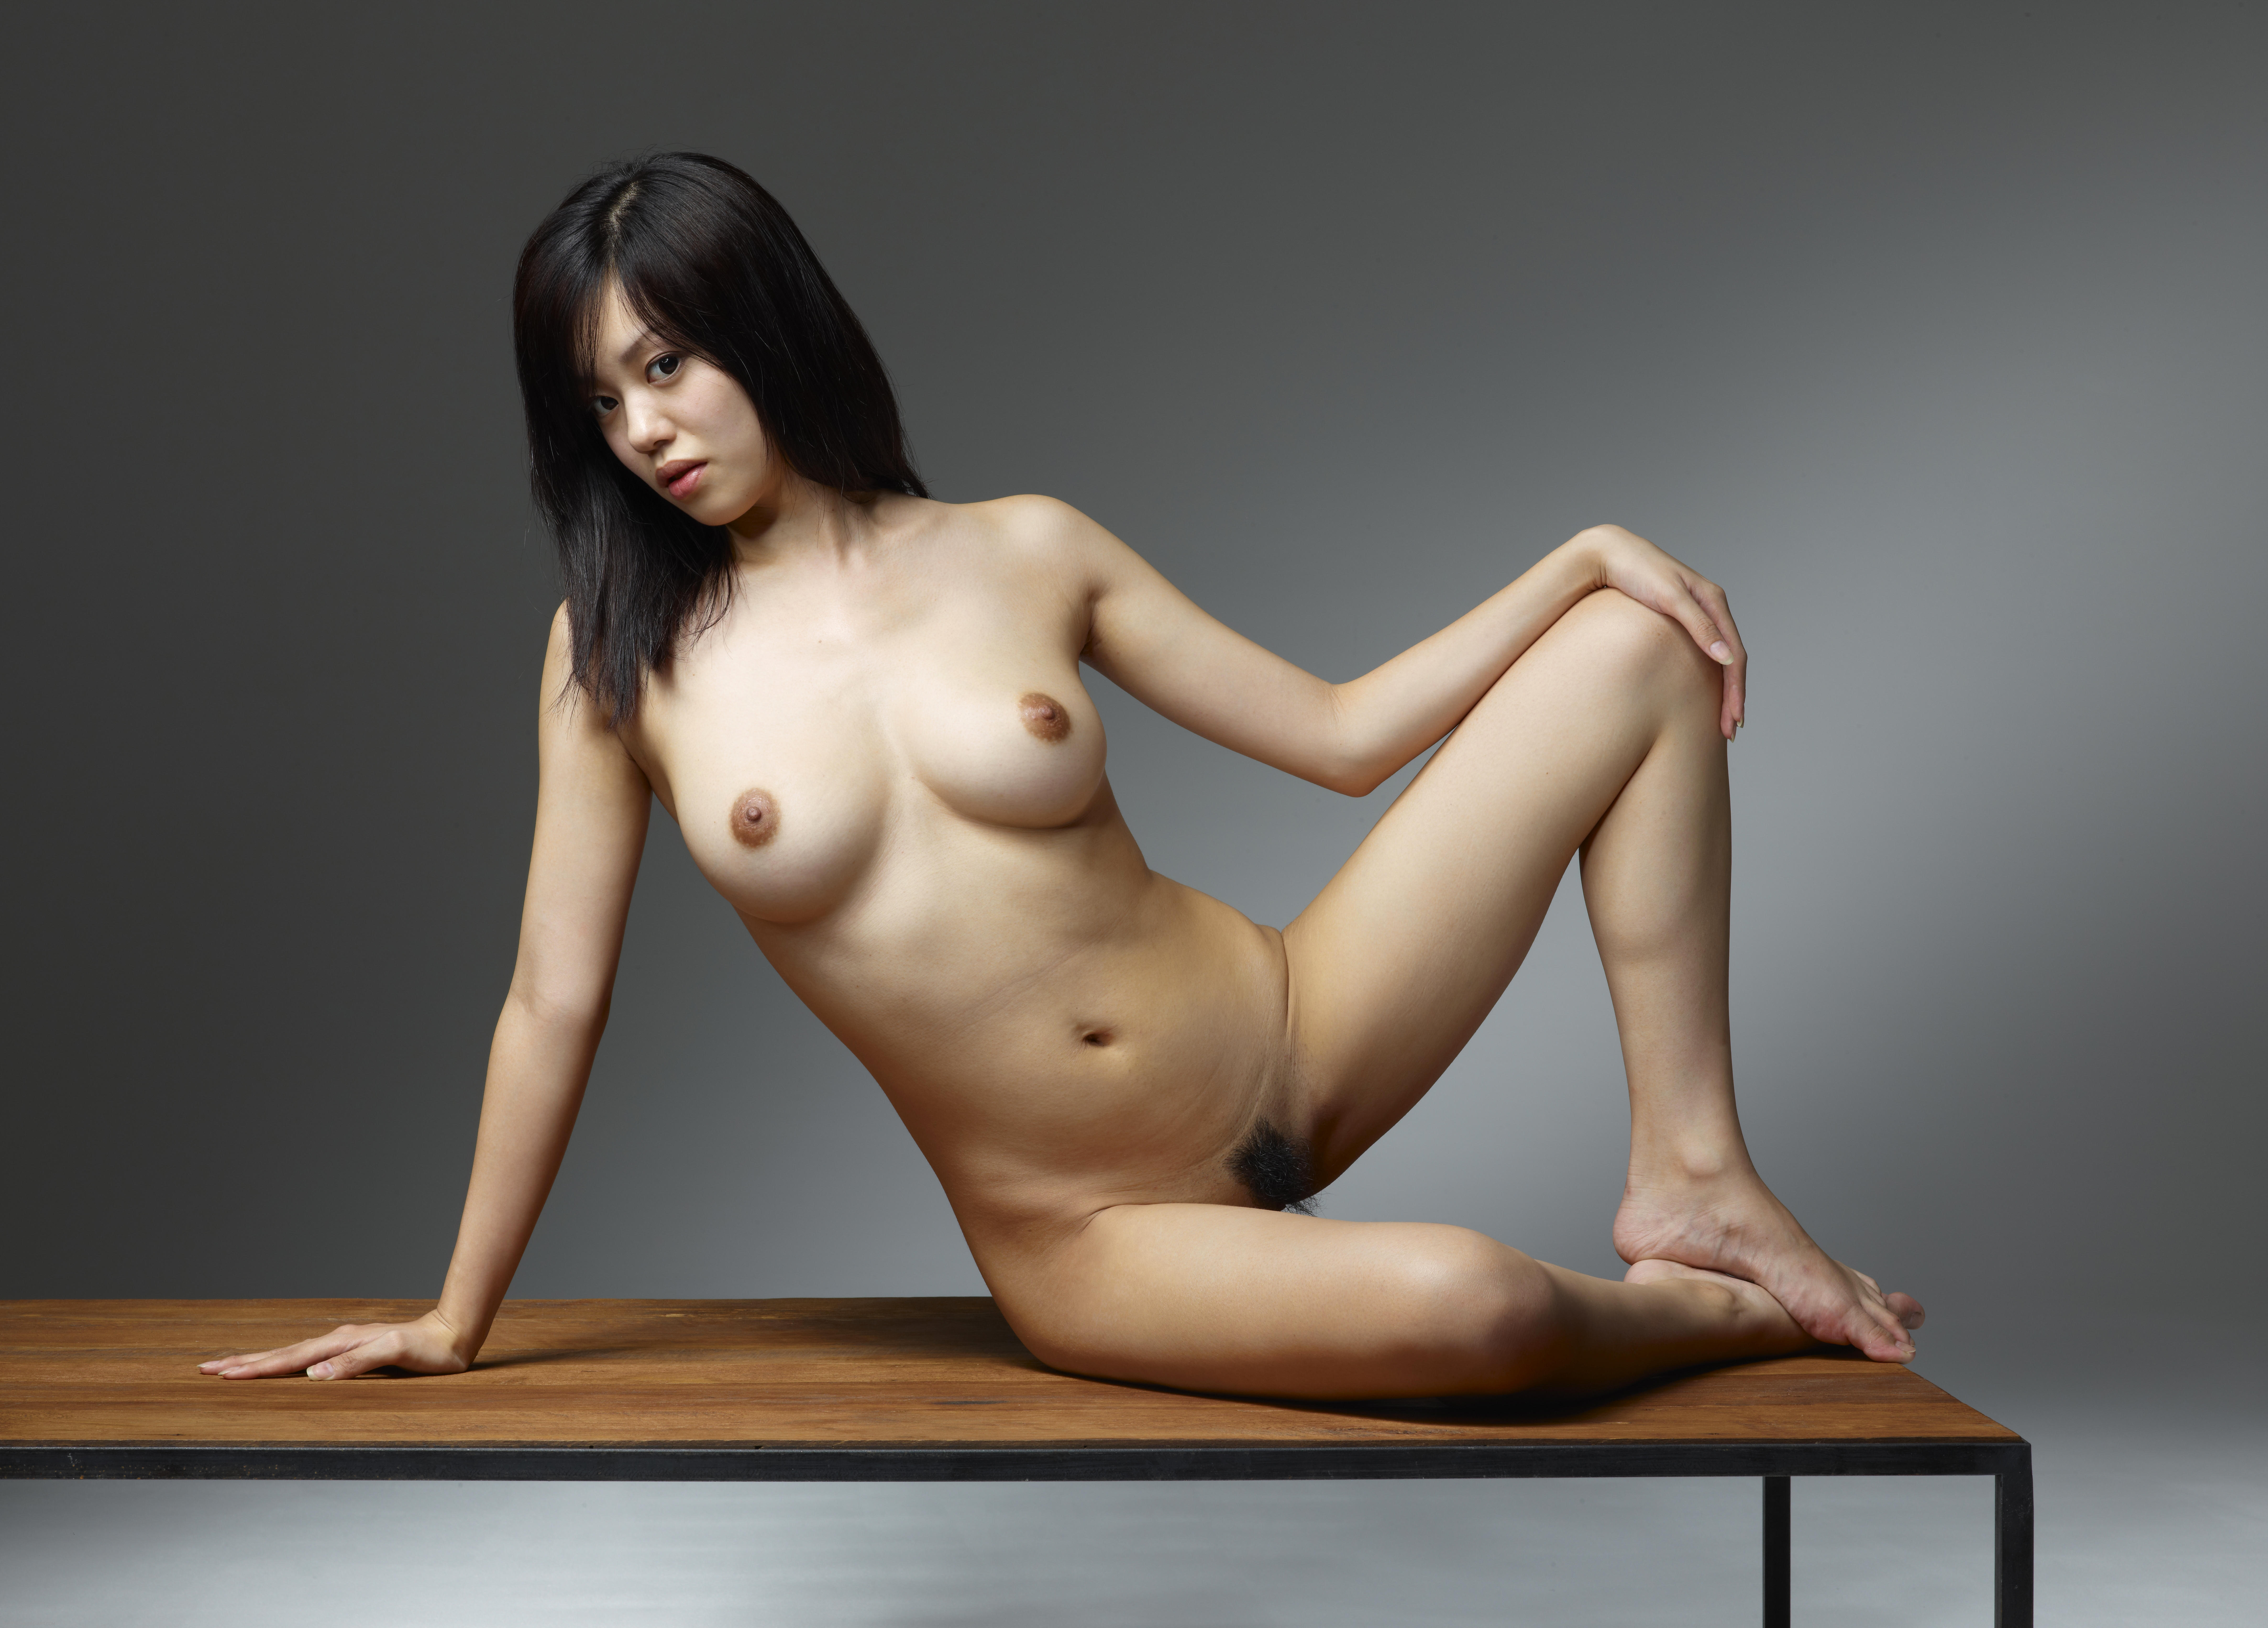 naked asian girls showing sex positions